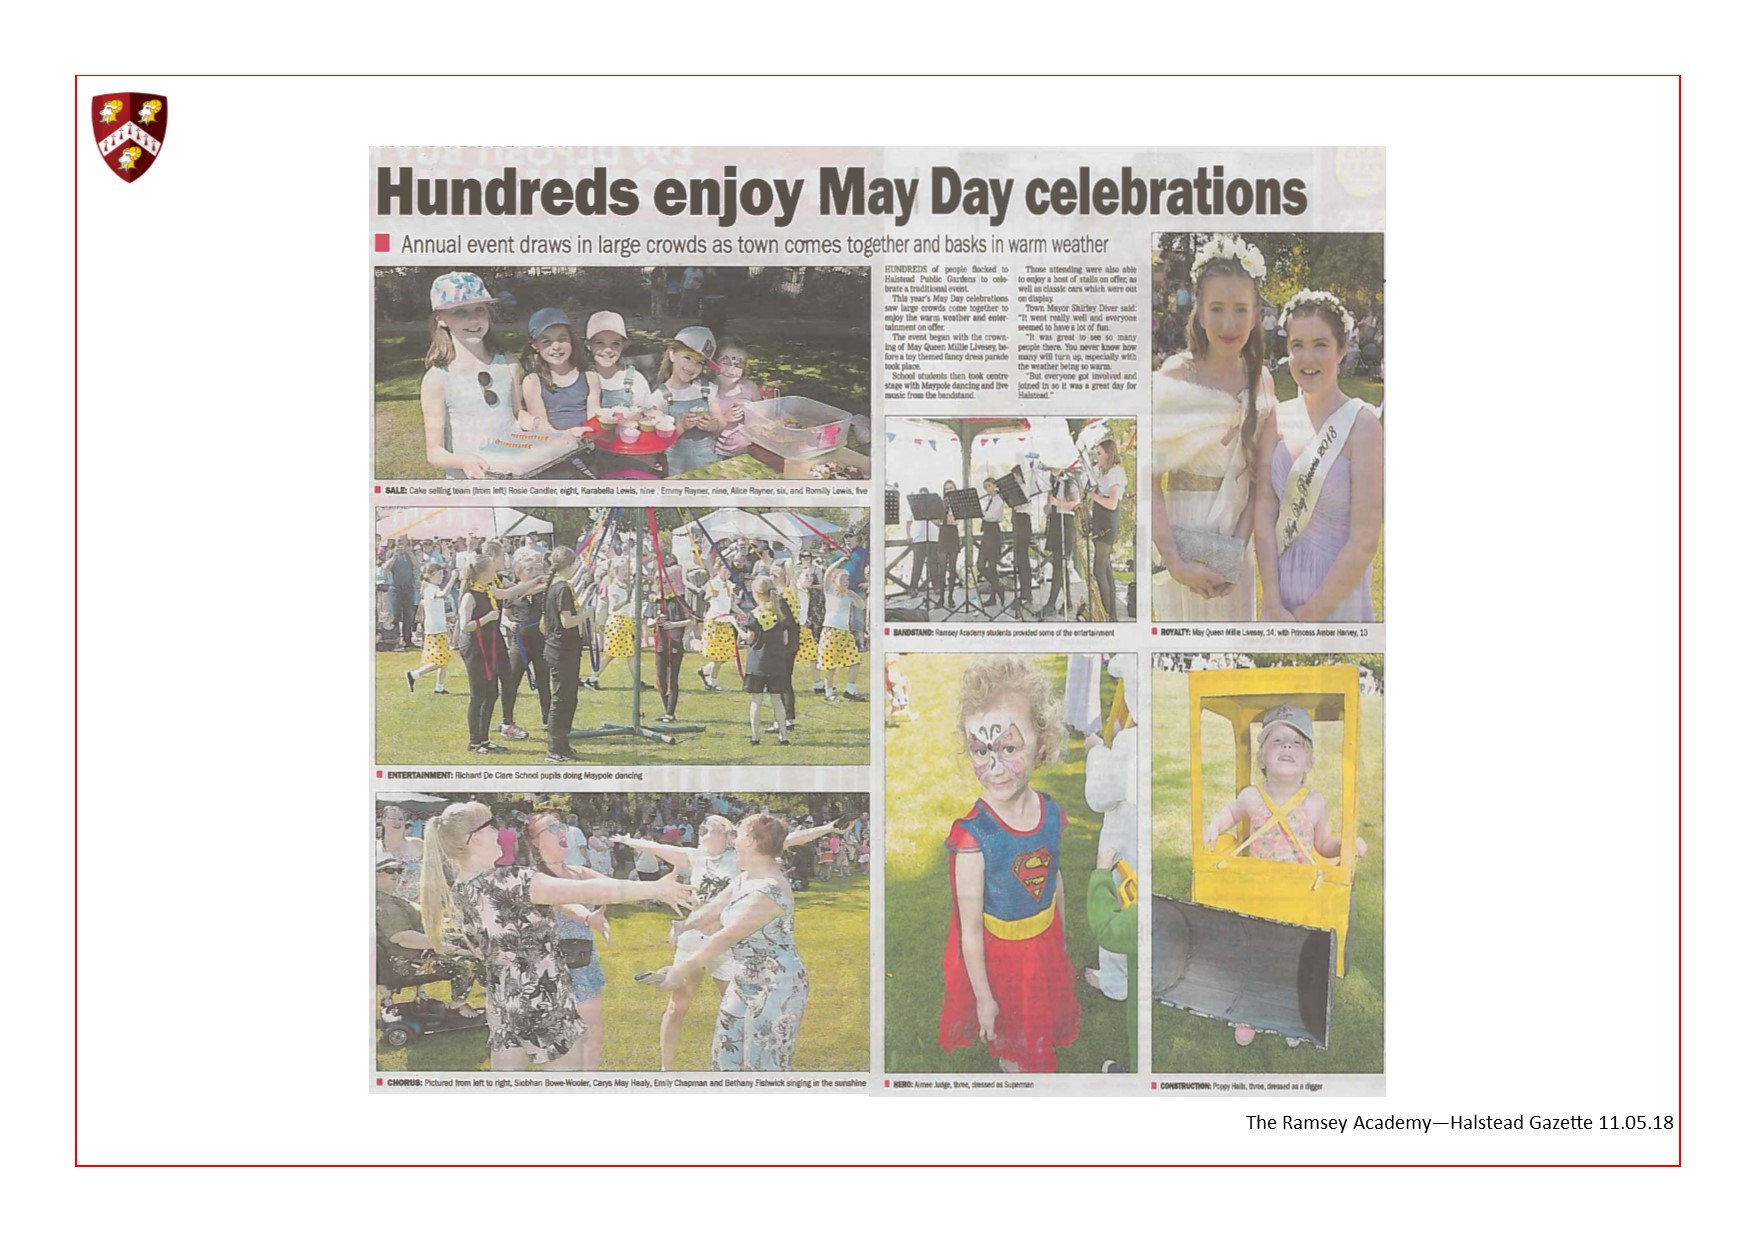 Hundreds Enjoy May Day Celebrations 11.05.18